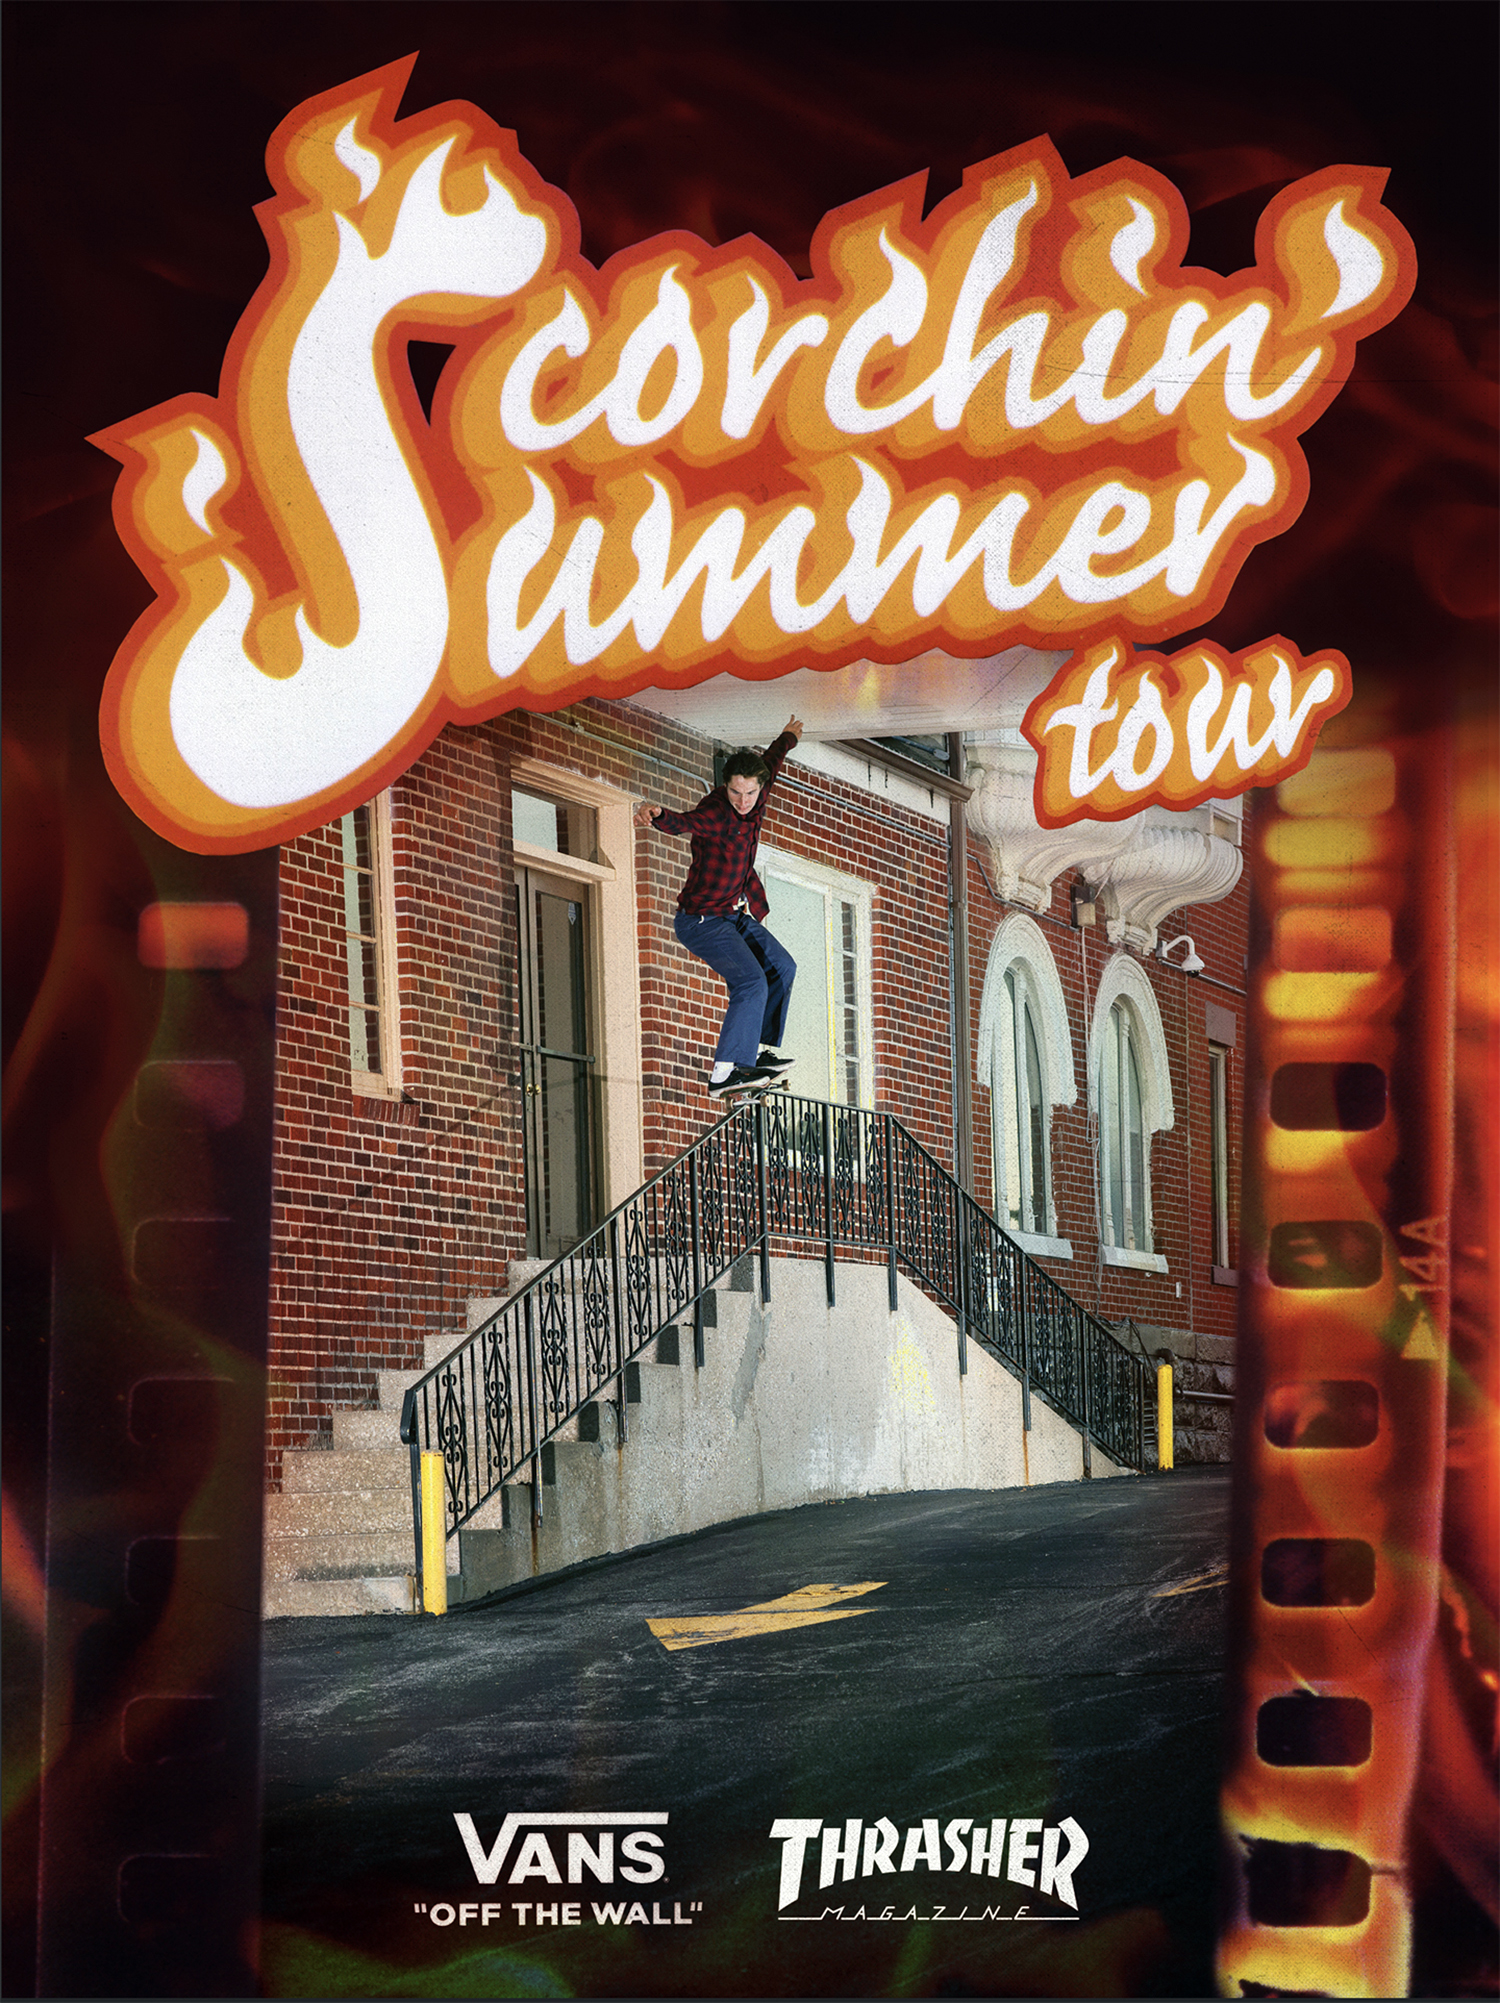 scorchin summer FLYER